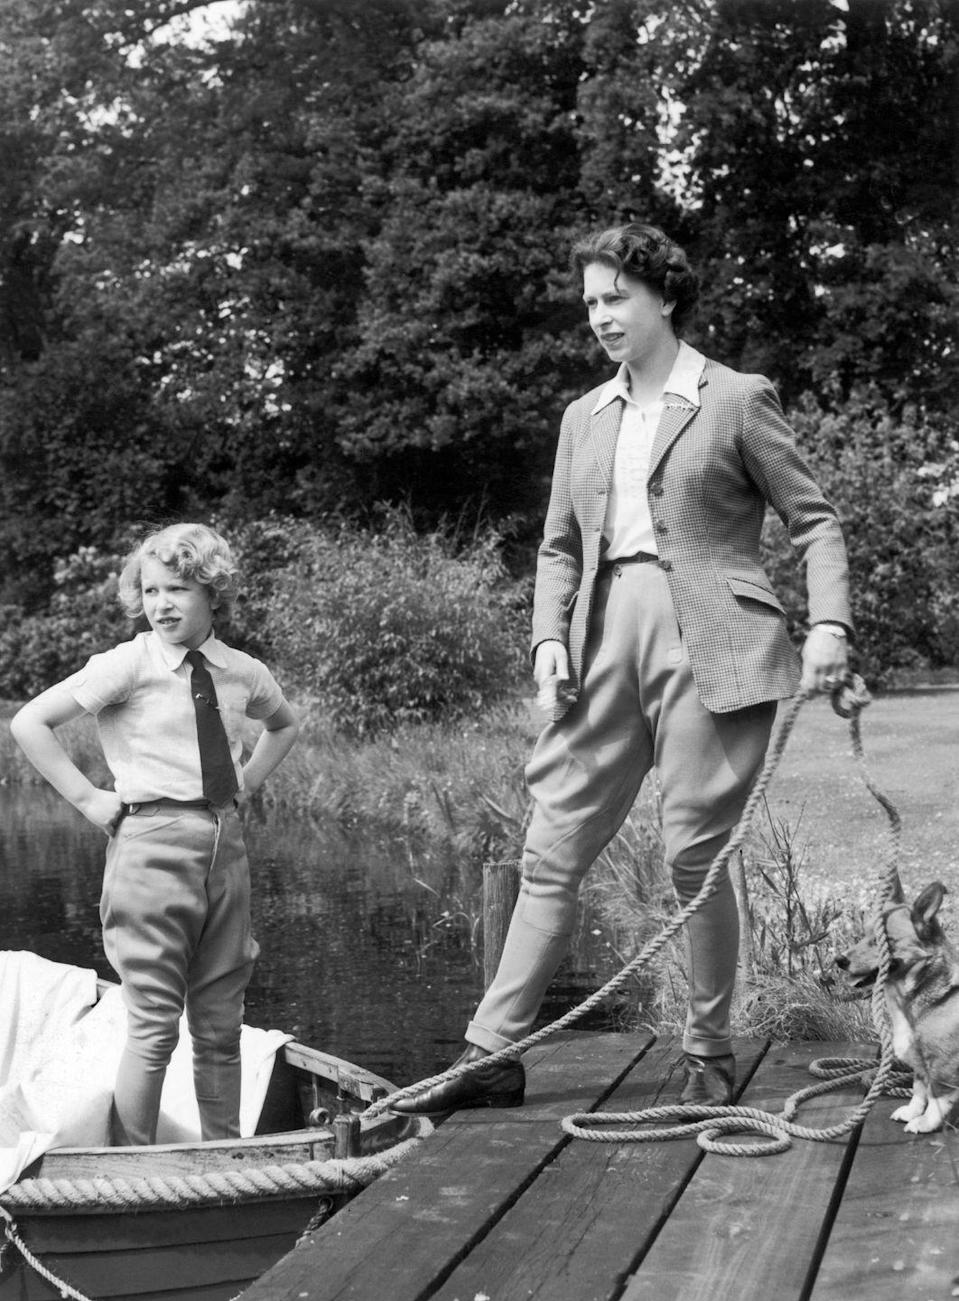 """<p>The 1950's saw a rise of women wearing pants while pregnant — usually paired with a smock top. While we never saw Queen Elizabeth adopt the style that was popularized by <a href=""""https://www.elle.com/fashion/personal-style/g28423/maternity-style-evolution/?slide=42"""" rel=""""nofollow noopener"""" target=""""_blank"""" data-ylk=""""slk:Lucille Ball"""" class=""""link rapid-noclick-resp"""">Lucille Ball</a> on <em>I Love Lucy</em>, this ensemble of high waisted britches, button down shirt and blazer was the closest Her Majesty came to the maternity trend.  </p>"""